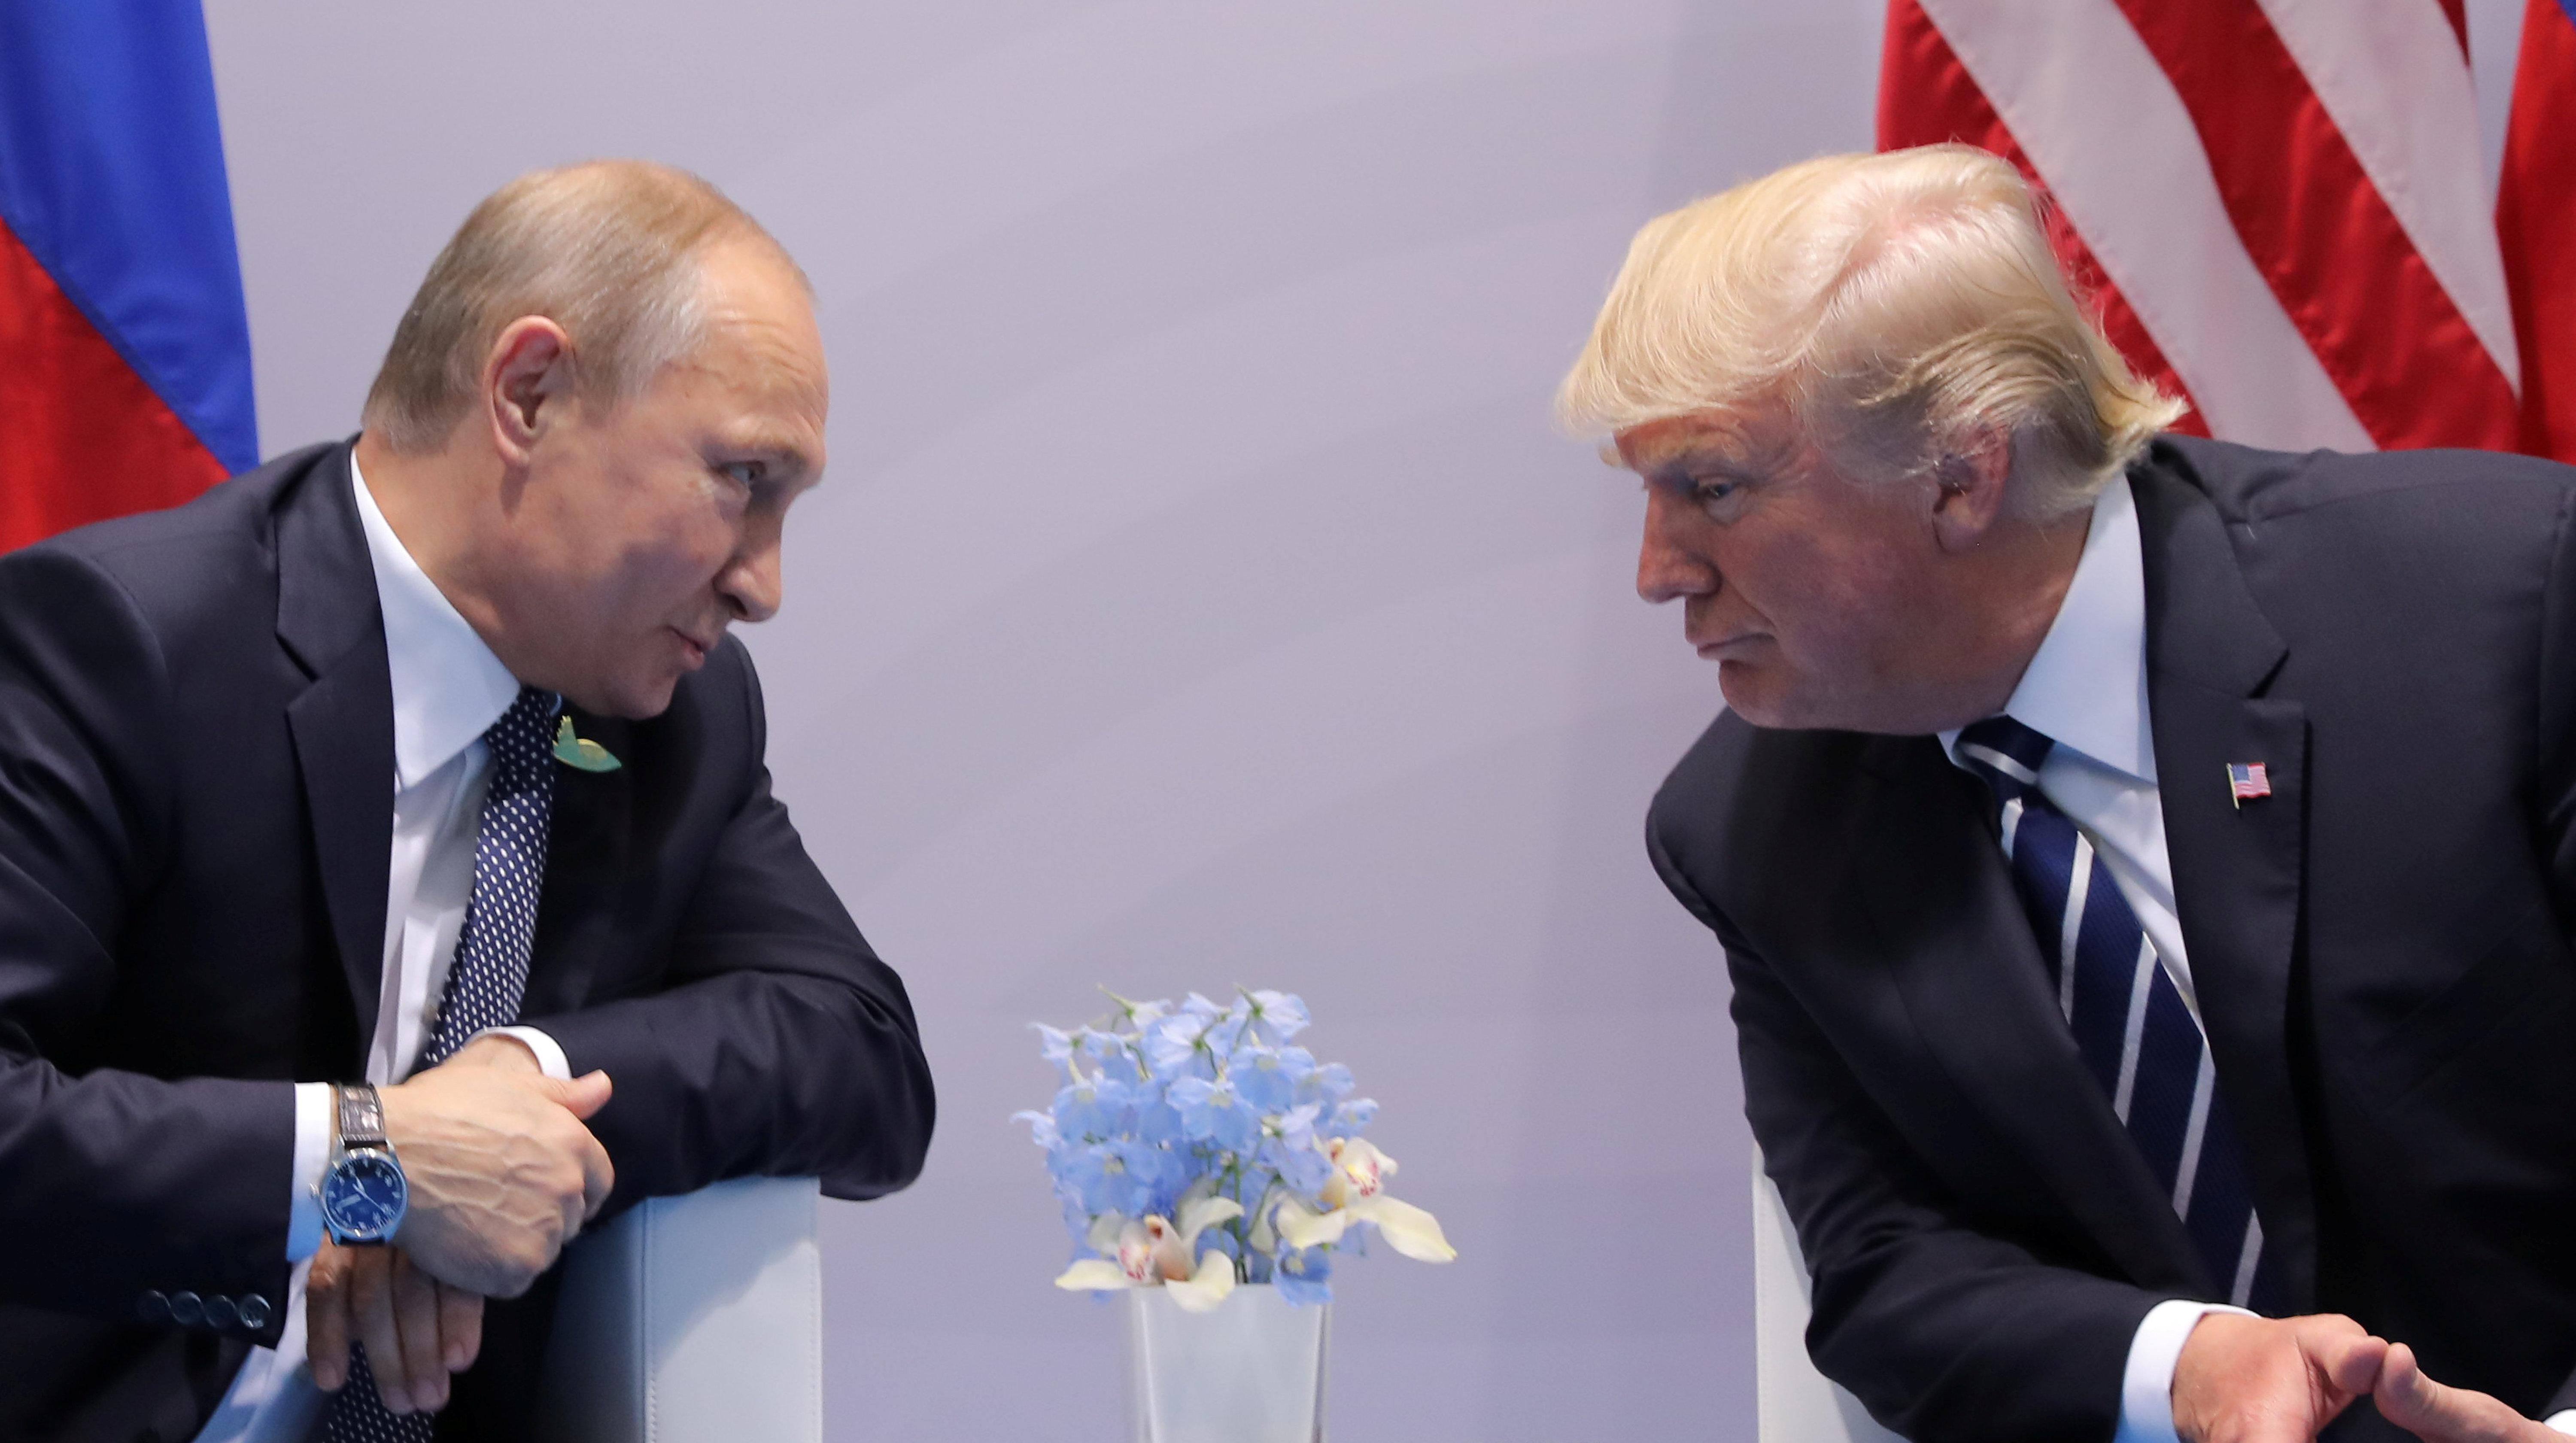 Trump Blames Putin, Iran For Backing 'Animal Assad' In Wake Of Reported Chemical Attack